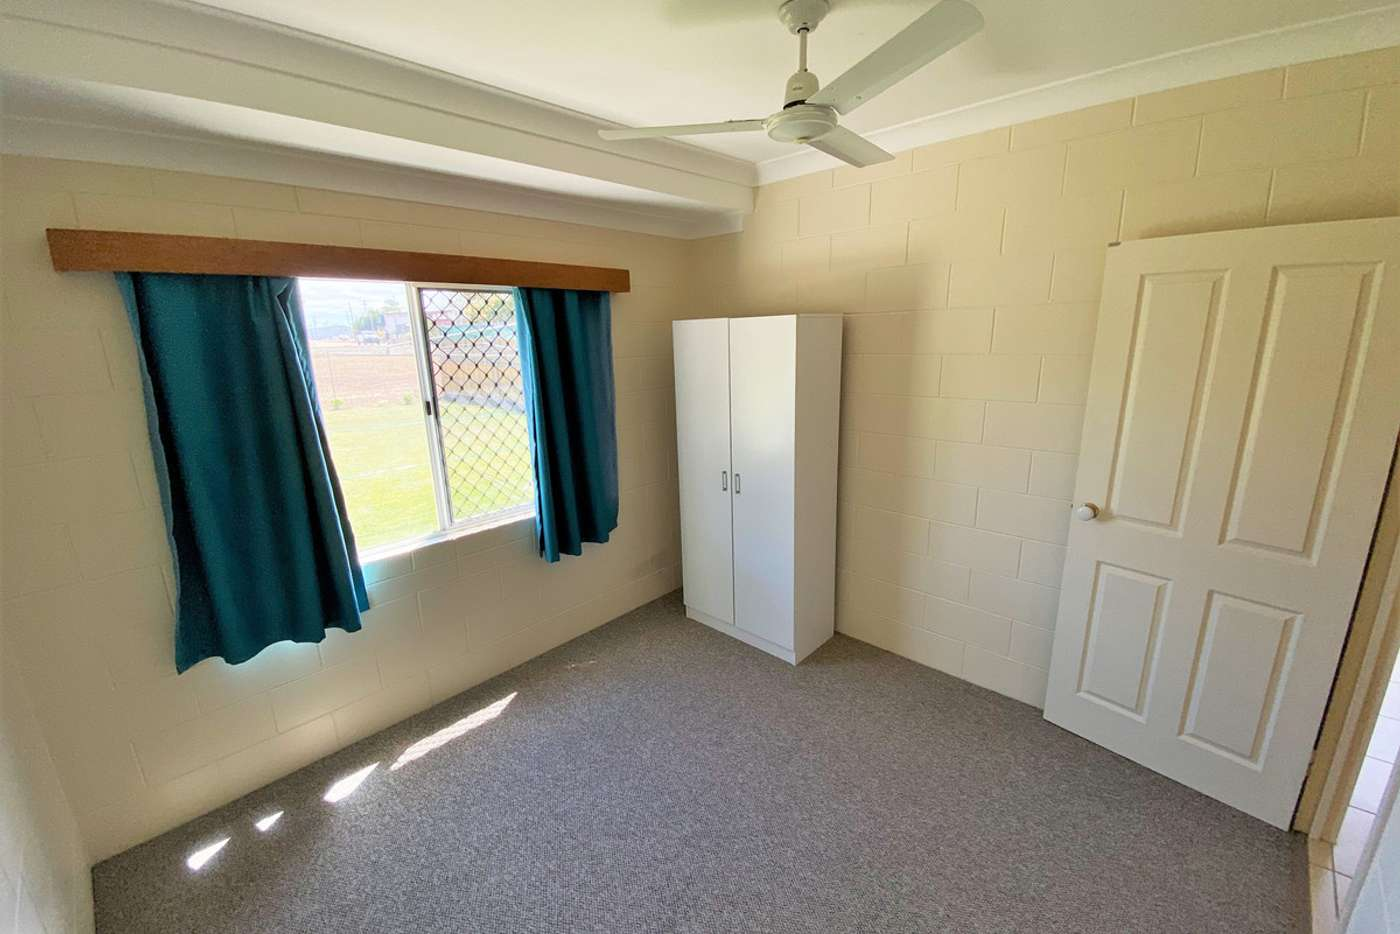 Fifth view of Homely house listing, 13 Kylie Close, Mareeba QLD 4880